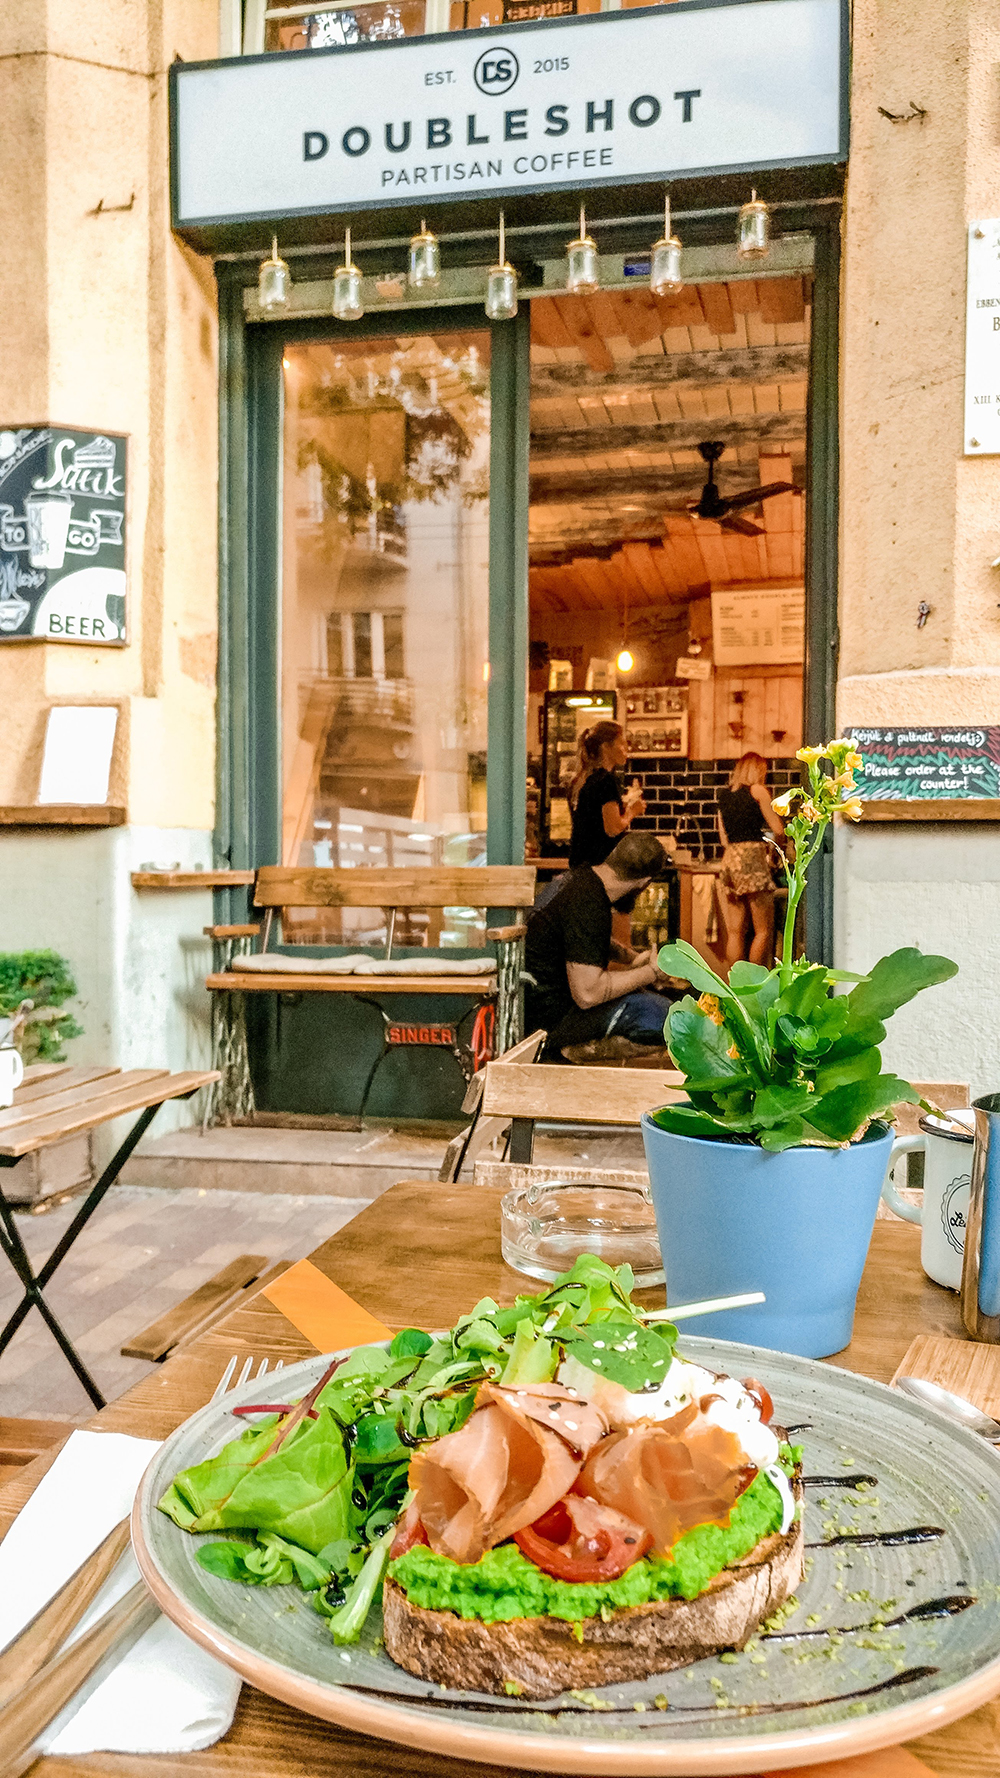 Eco avocado toast at Double shot Partisan coffee shop - Budapest's best breakfast & brunch places - Jászai Mari square and Pozsonyi street | Aliz's Wonderland